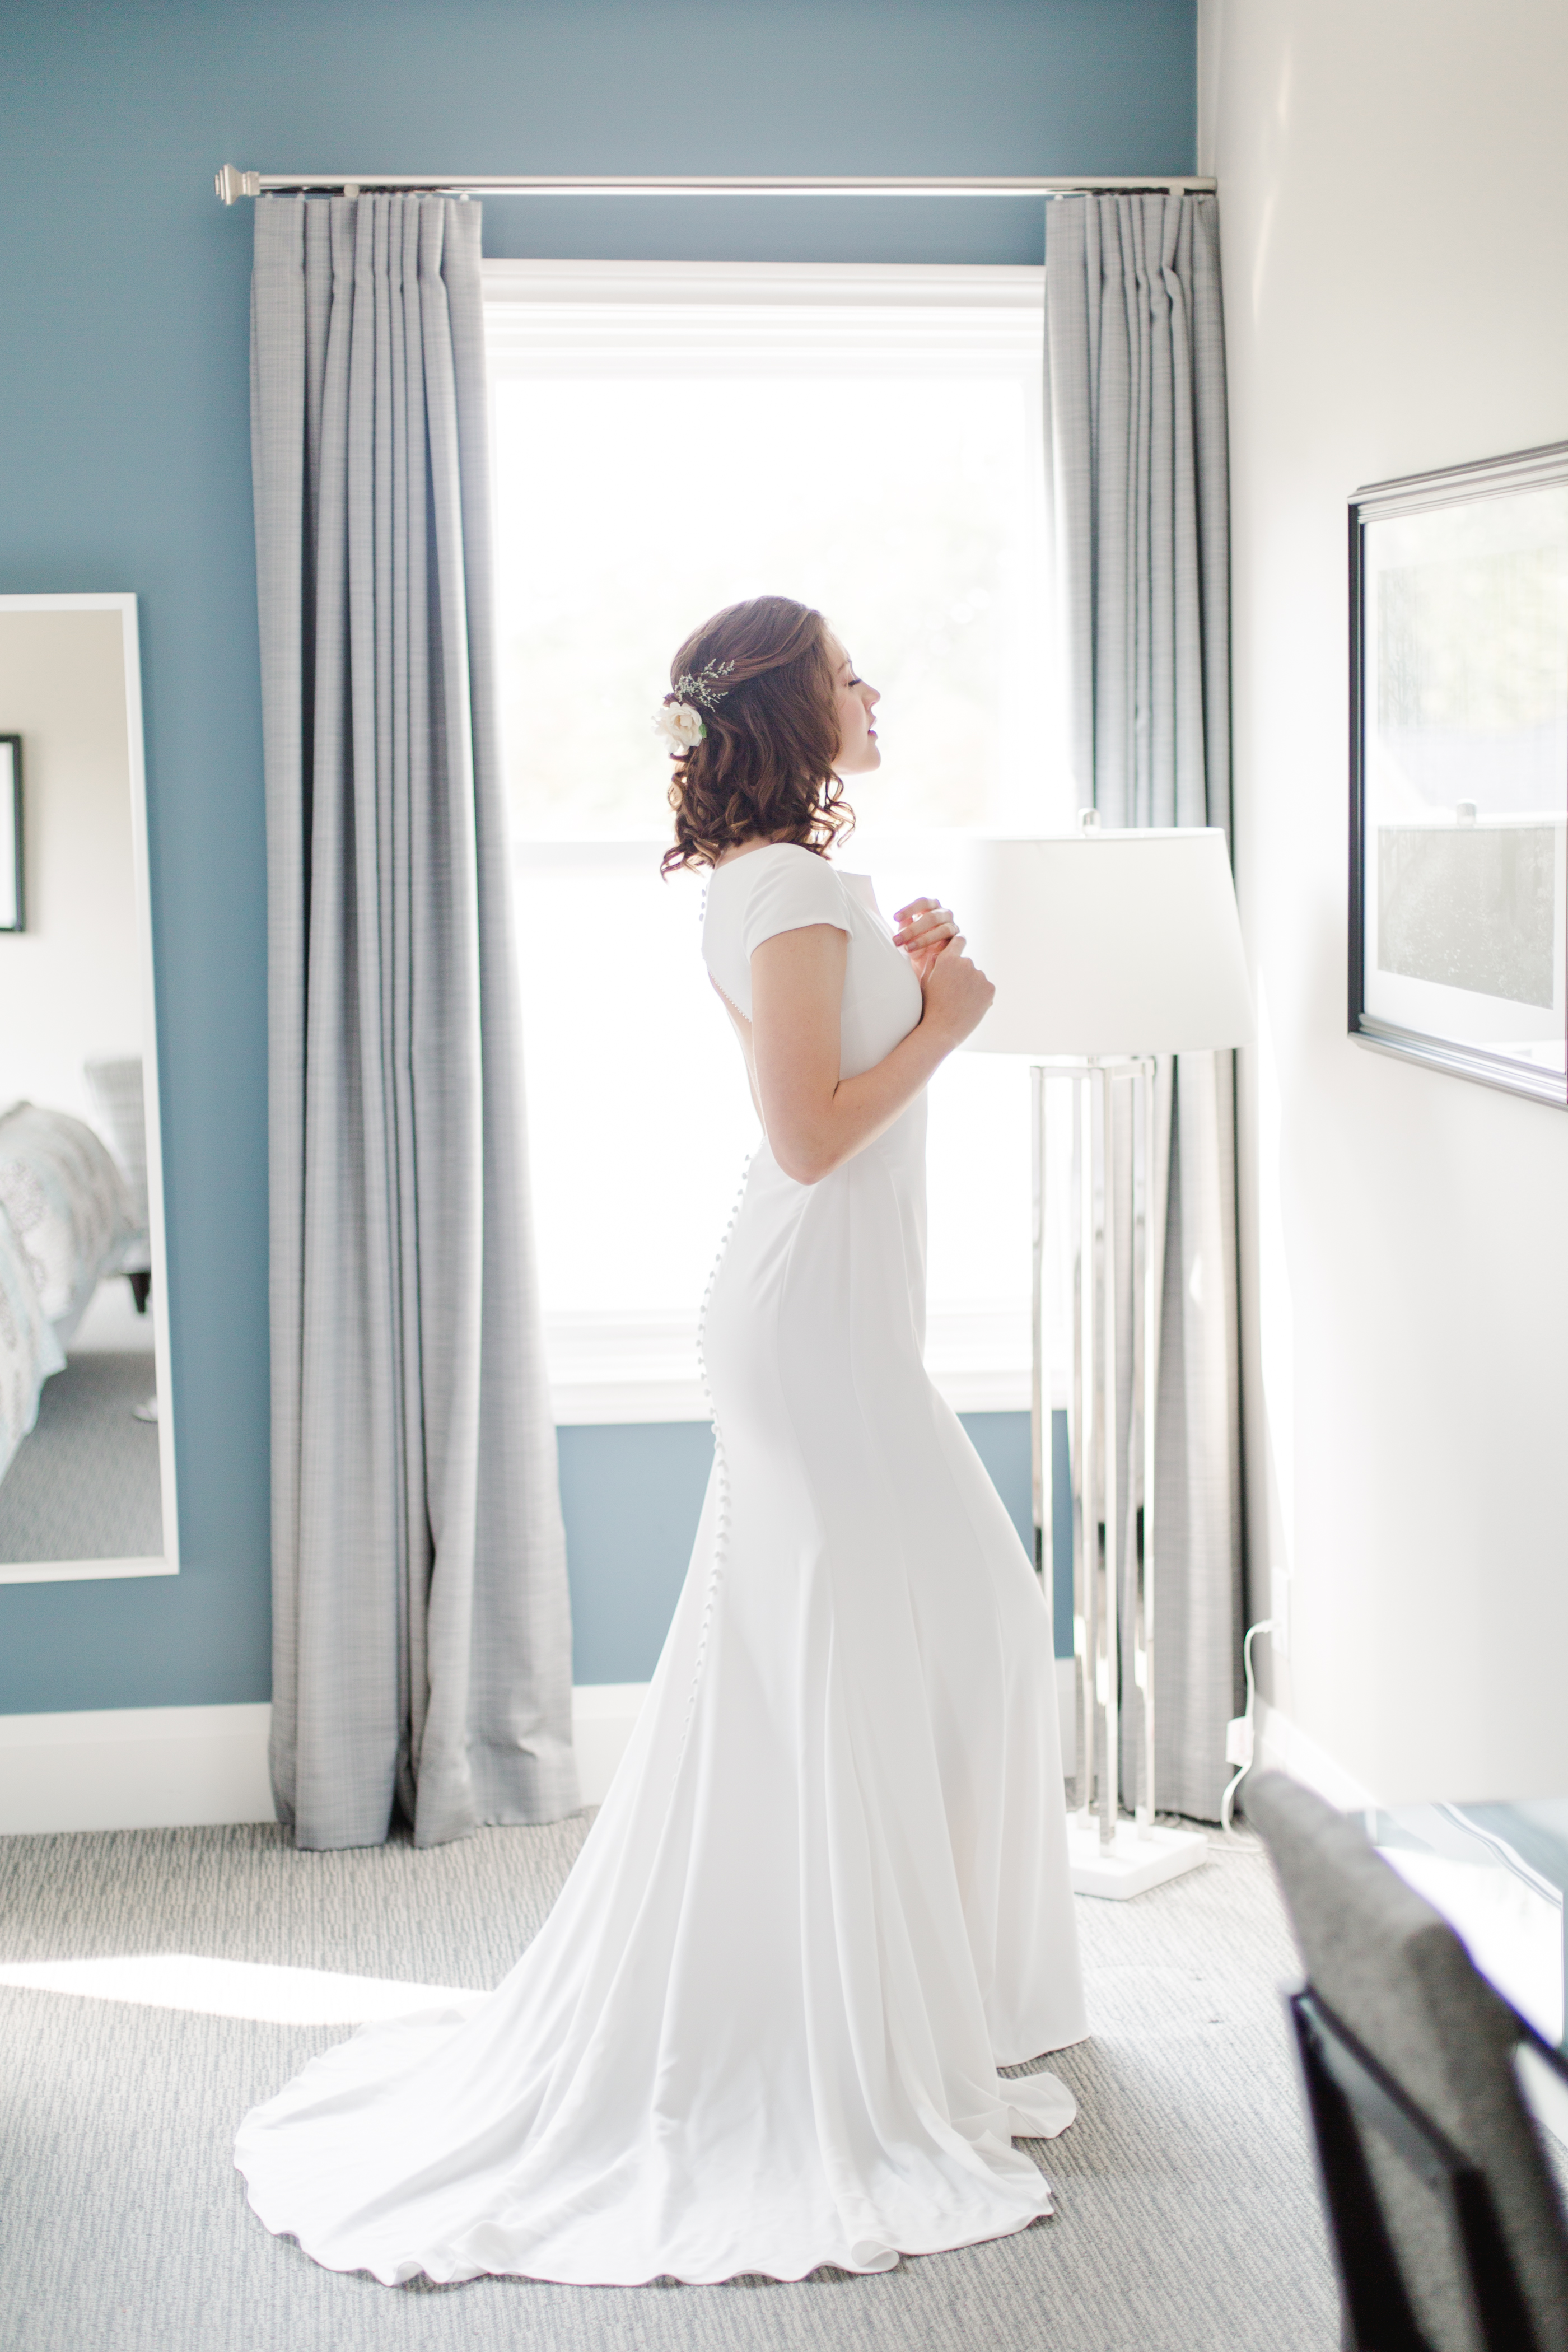 Bride before the wedding in a suite at The Gate House in Niagara-on-the-Lake